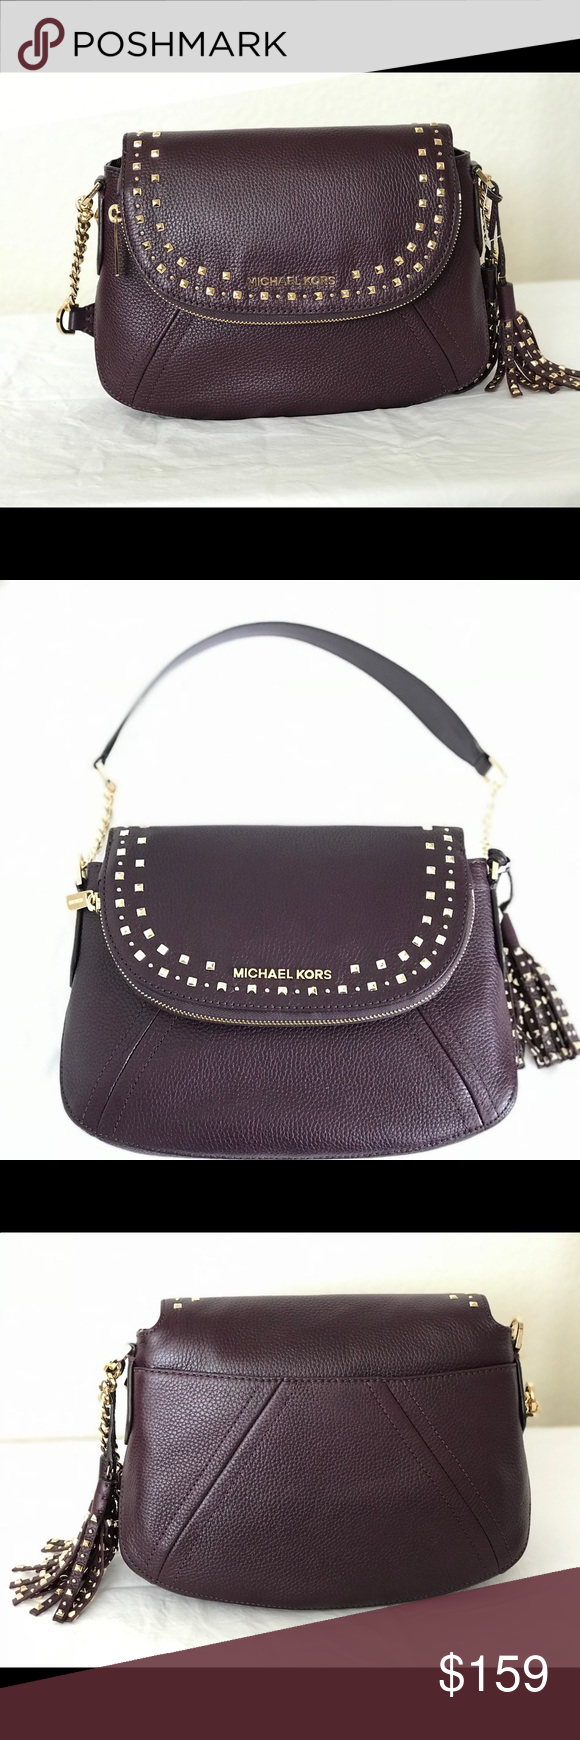 eb562f7d6a9d Michael Kors Aria Stud MD Convertible Shoulder Bag Top flap snap closure  Interior: Lined with